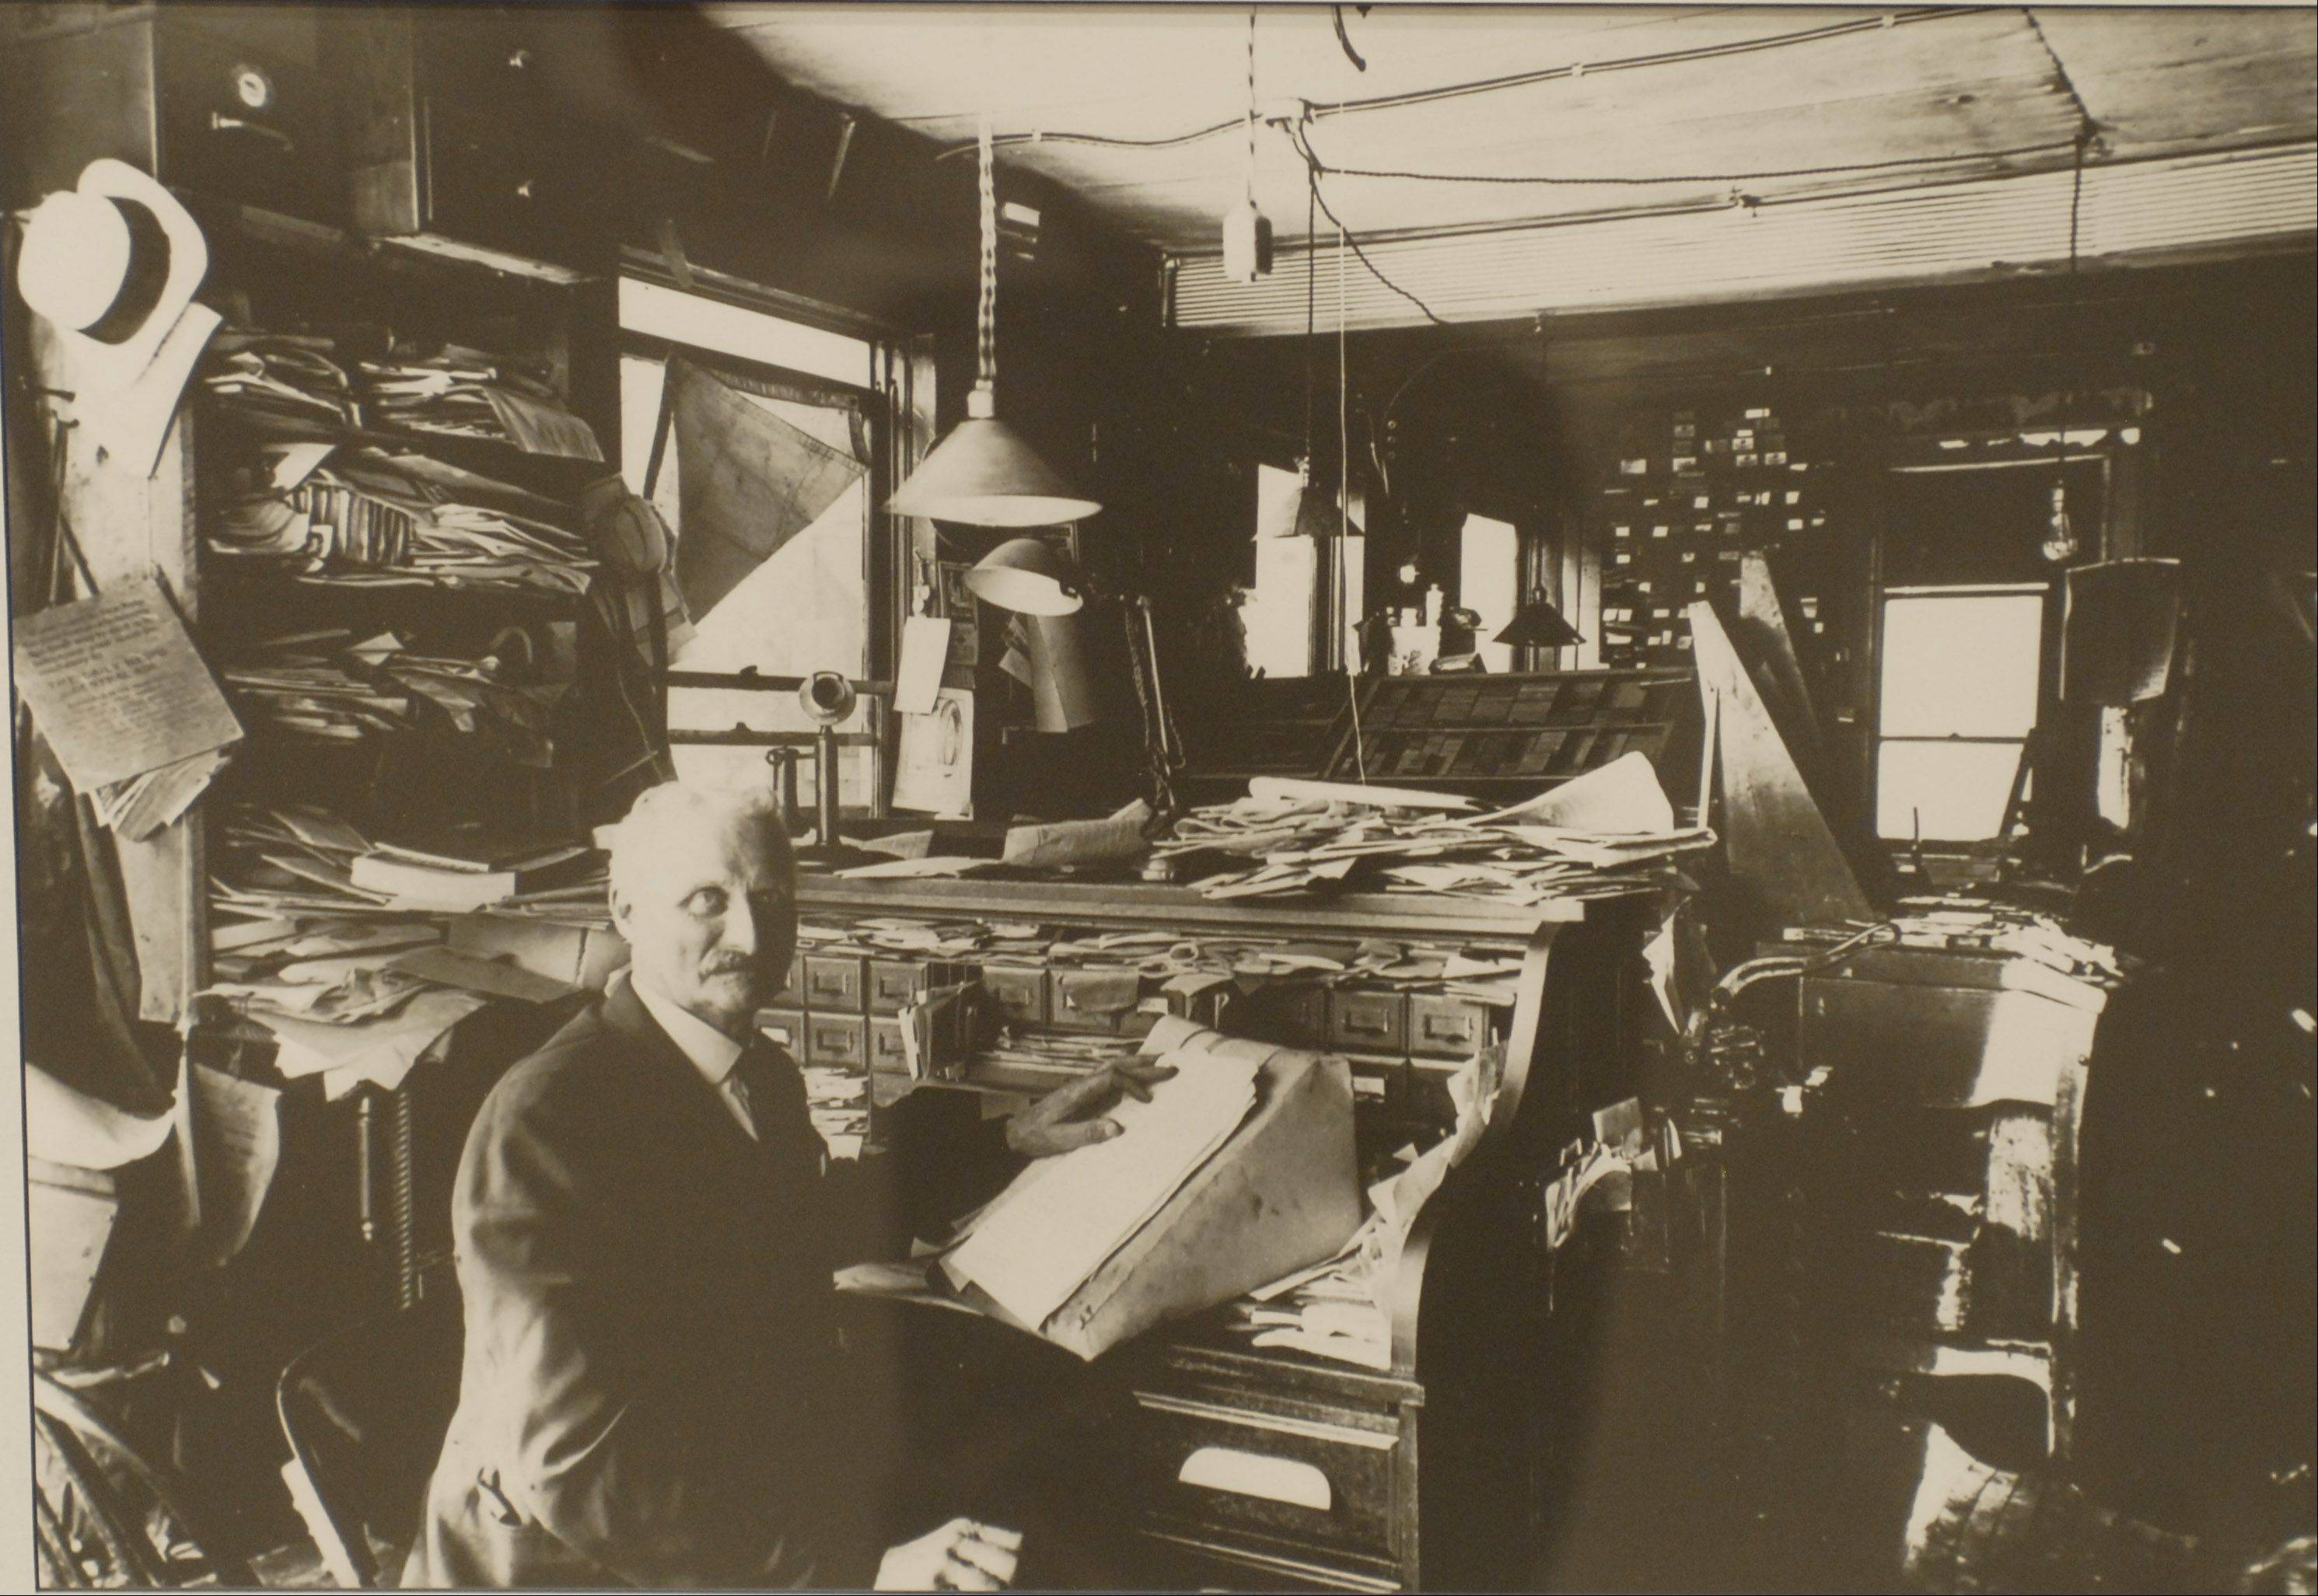 Hosea C. Paddock at his desk in the 1800s.